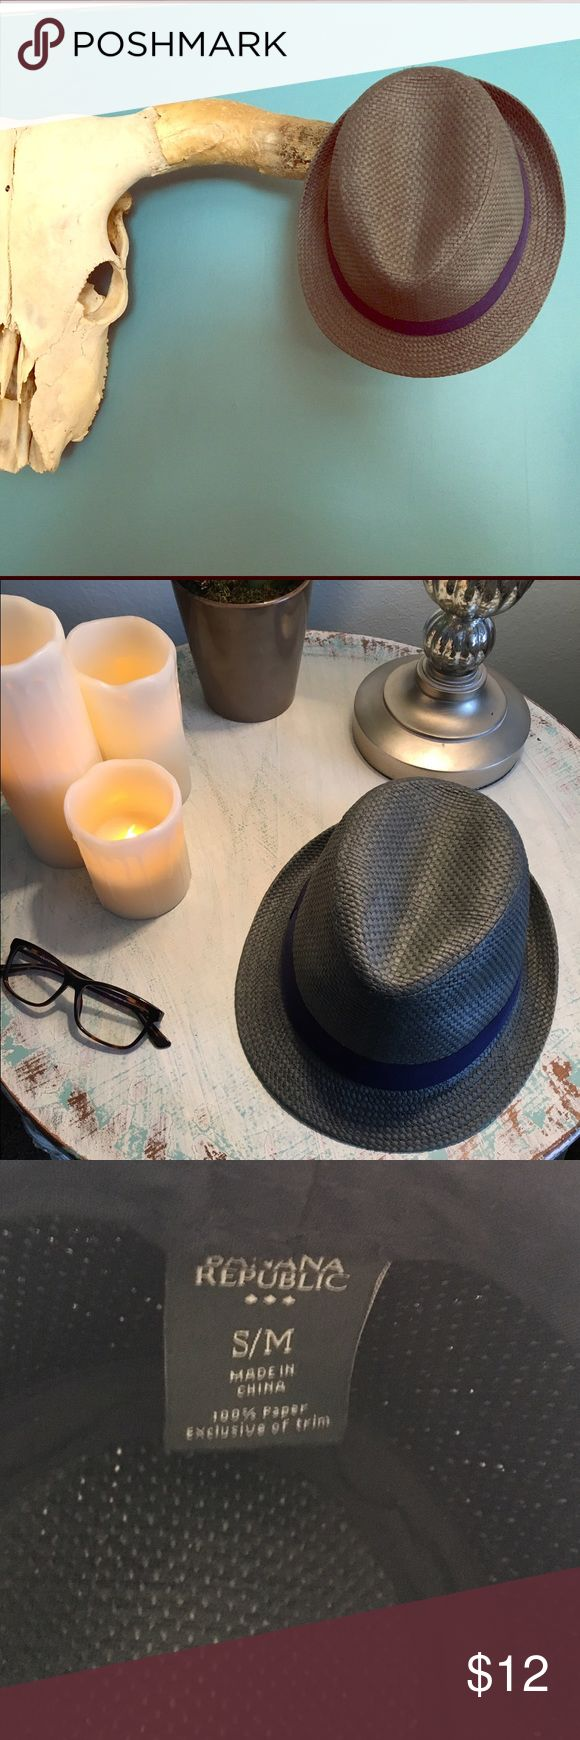 Banana Republic Straw Fedora Straw fedora that's a s/m. Only worn once. In excellent condition. Banana Republic Accessories Hats